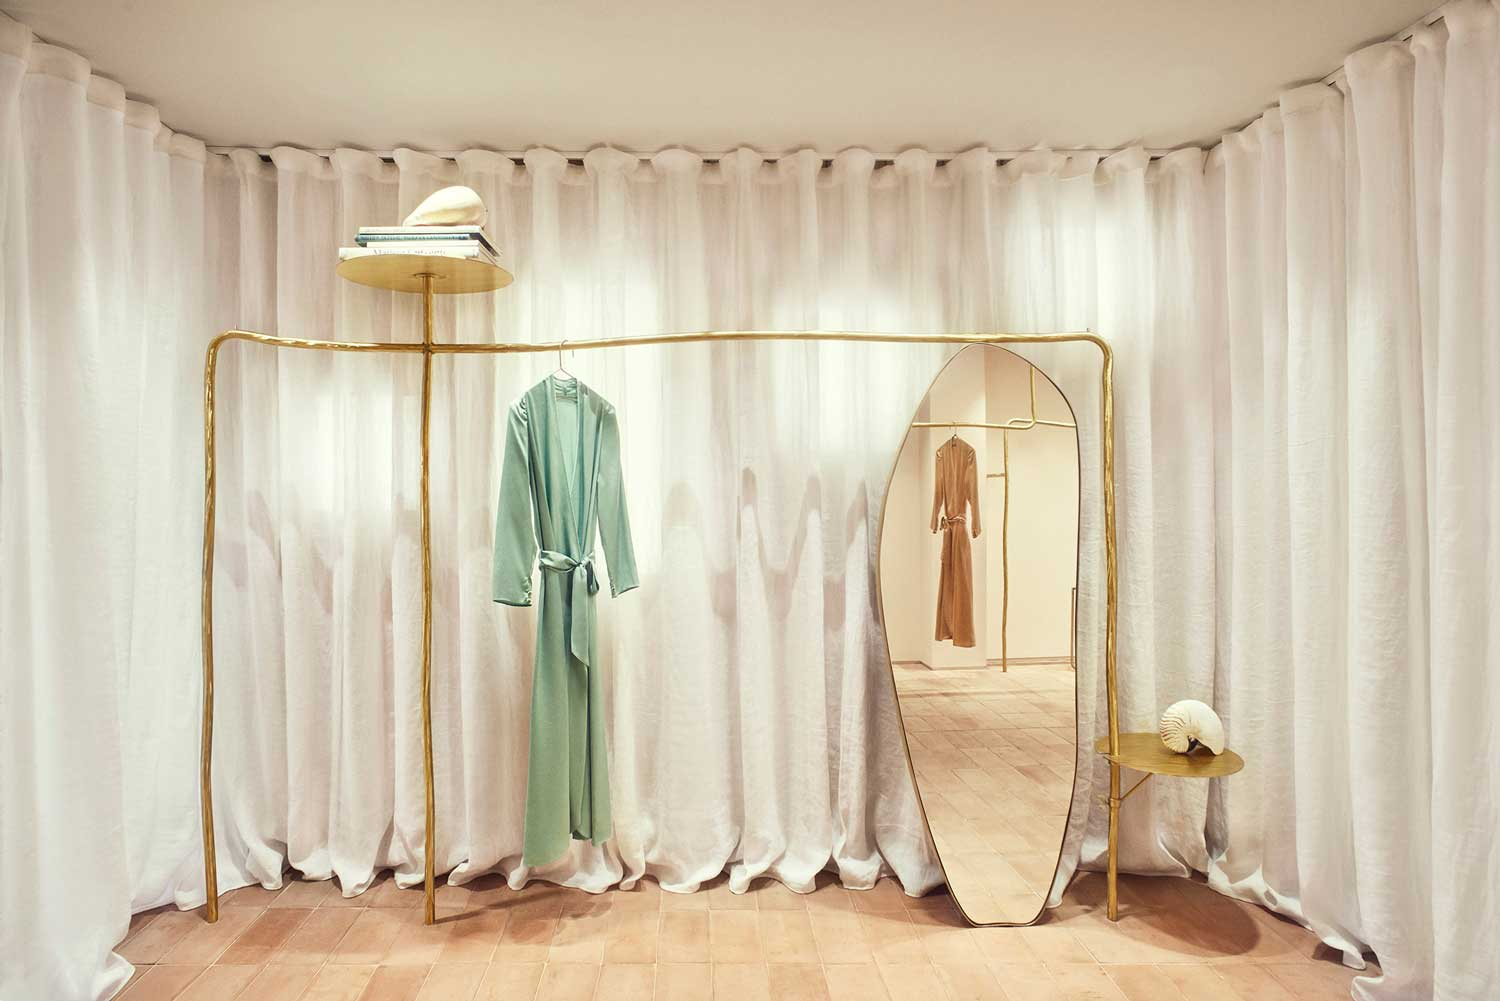 A New Scene Stealer Store By Forte Forte Store | Eclectic Trends